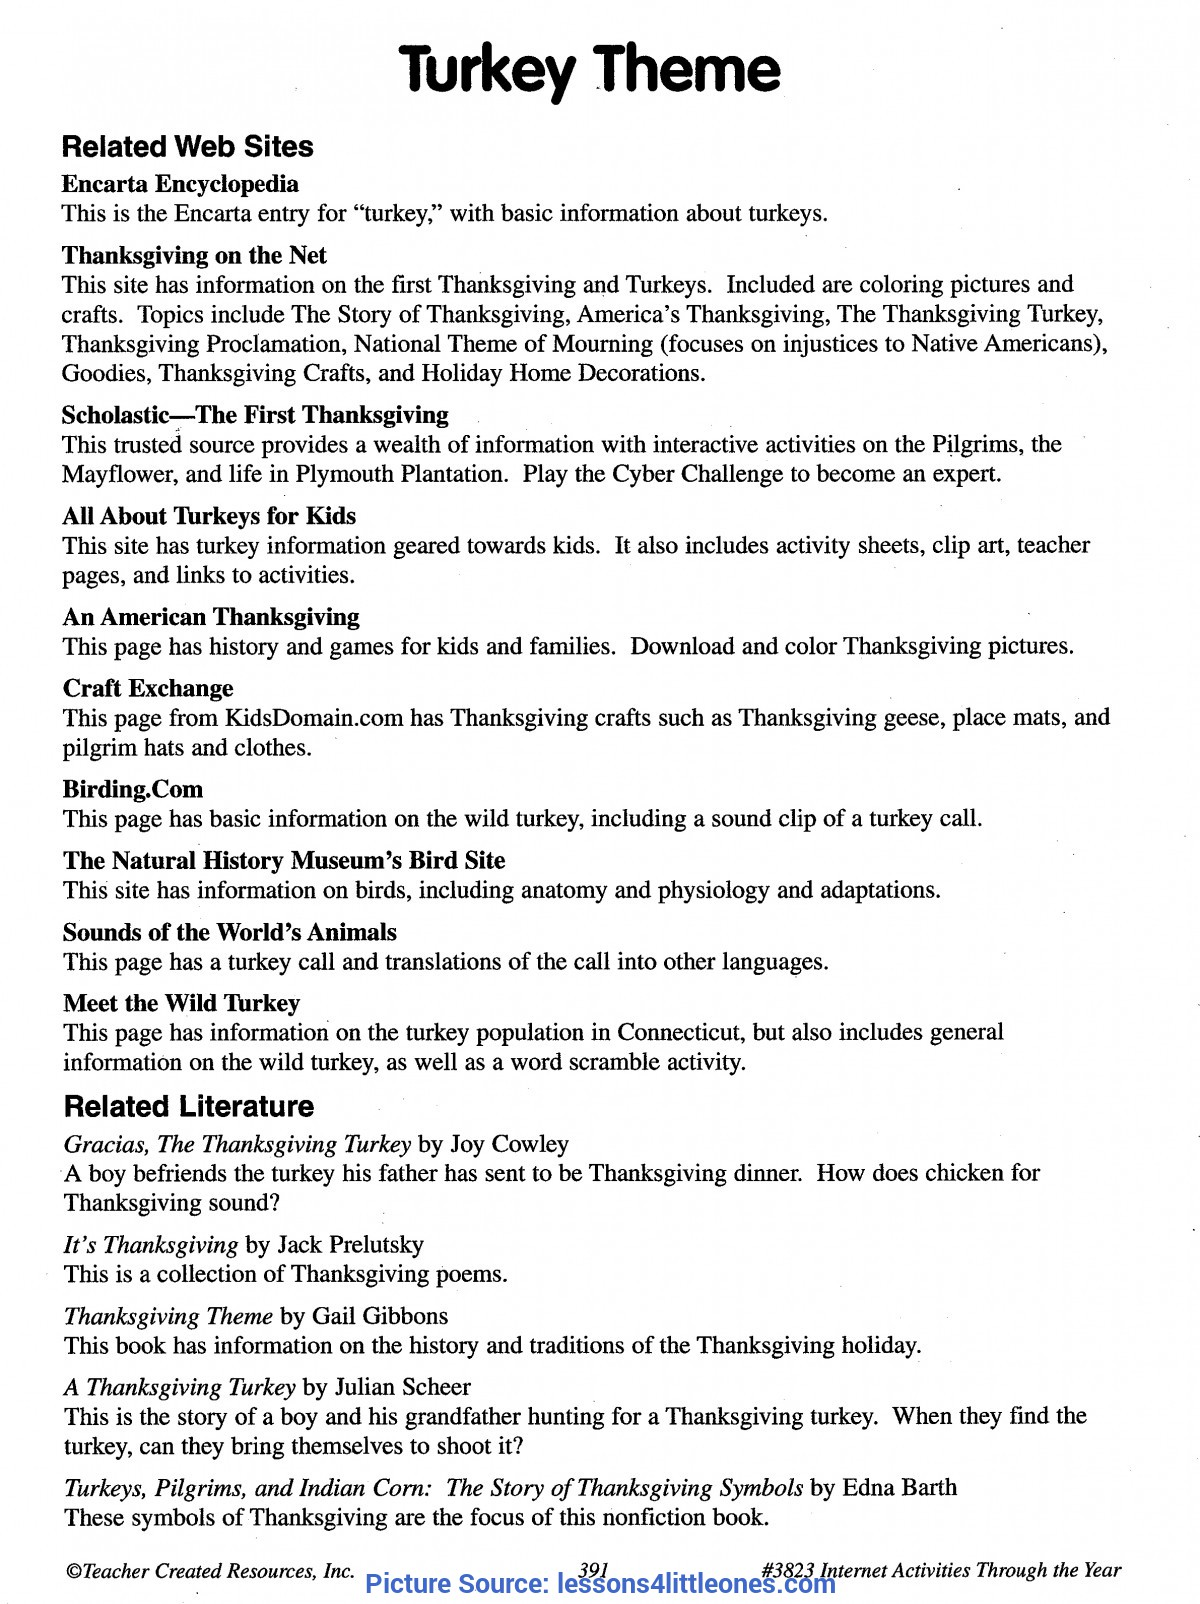 Simple Pilgrim Lesson Plans Turkey Internet Lesson Plan Page 1 - Lessons For Little Ones B